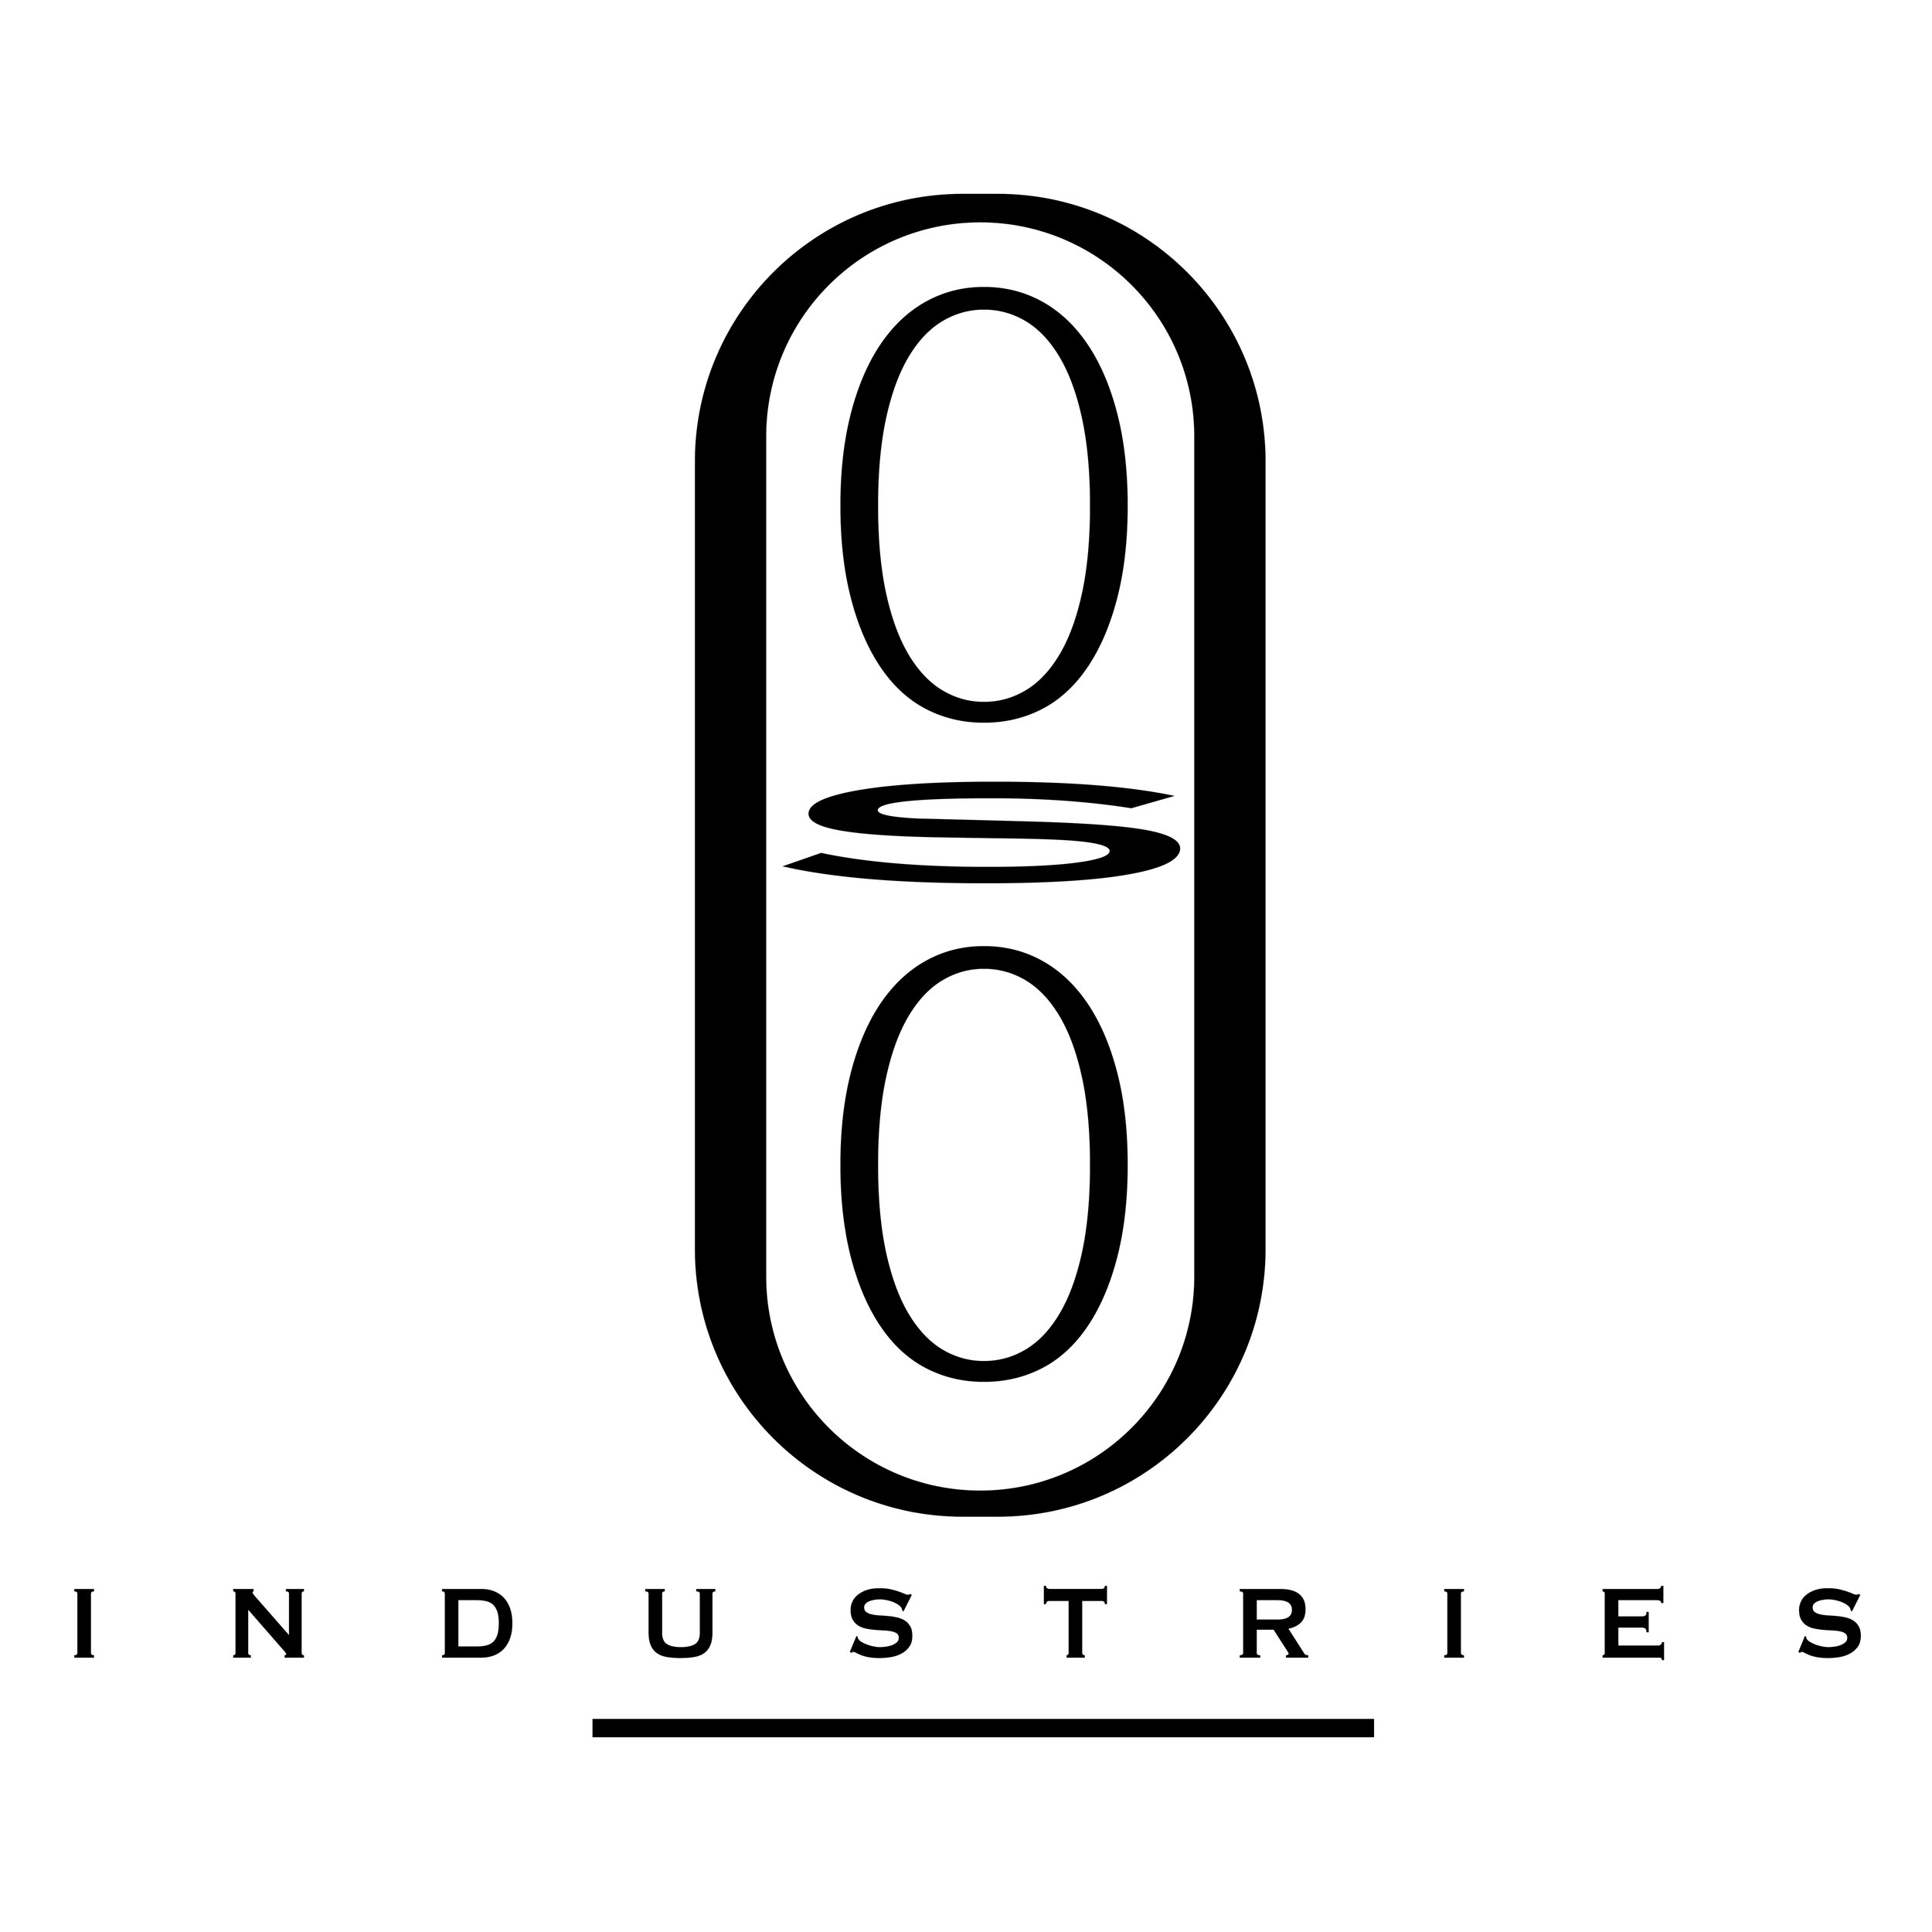 OSO Industries - Oso Industries is a design studio focusing on new applications of concrete for furniture and custom interior design. Inspired by urban living, sculptor and founder Eric Weil and his team individually hand craft multi-functional furniture and architectural elements featuring concrete and other materials in clean, geometric forms. Elevating concrete — often overlooked and considered utilitarian — into beautiful, highly polished surfaces has been their focus ever since the inception in 2005. Over the years, the design studio has continued to find new uses for concrete by coupling it with stainless steel, bronze, walnut, and colored glass.